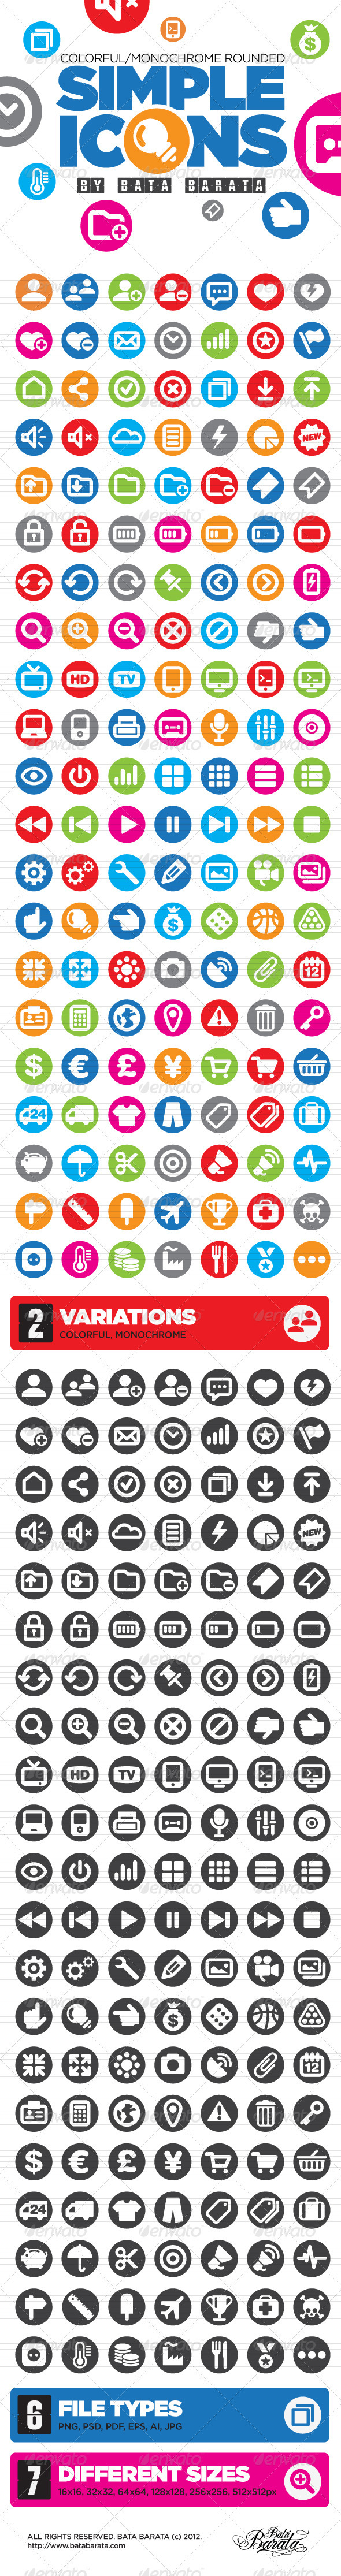 Simple Icons - Web Icons